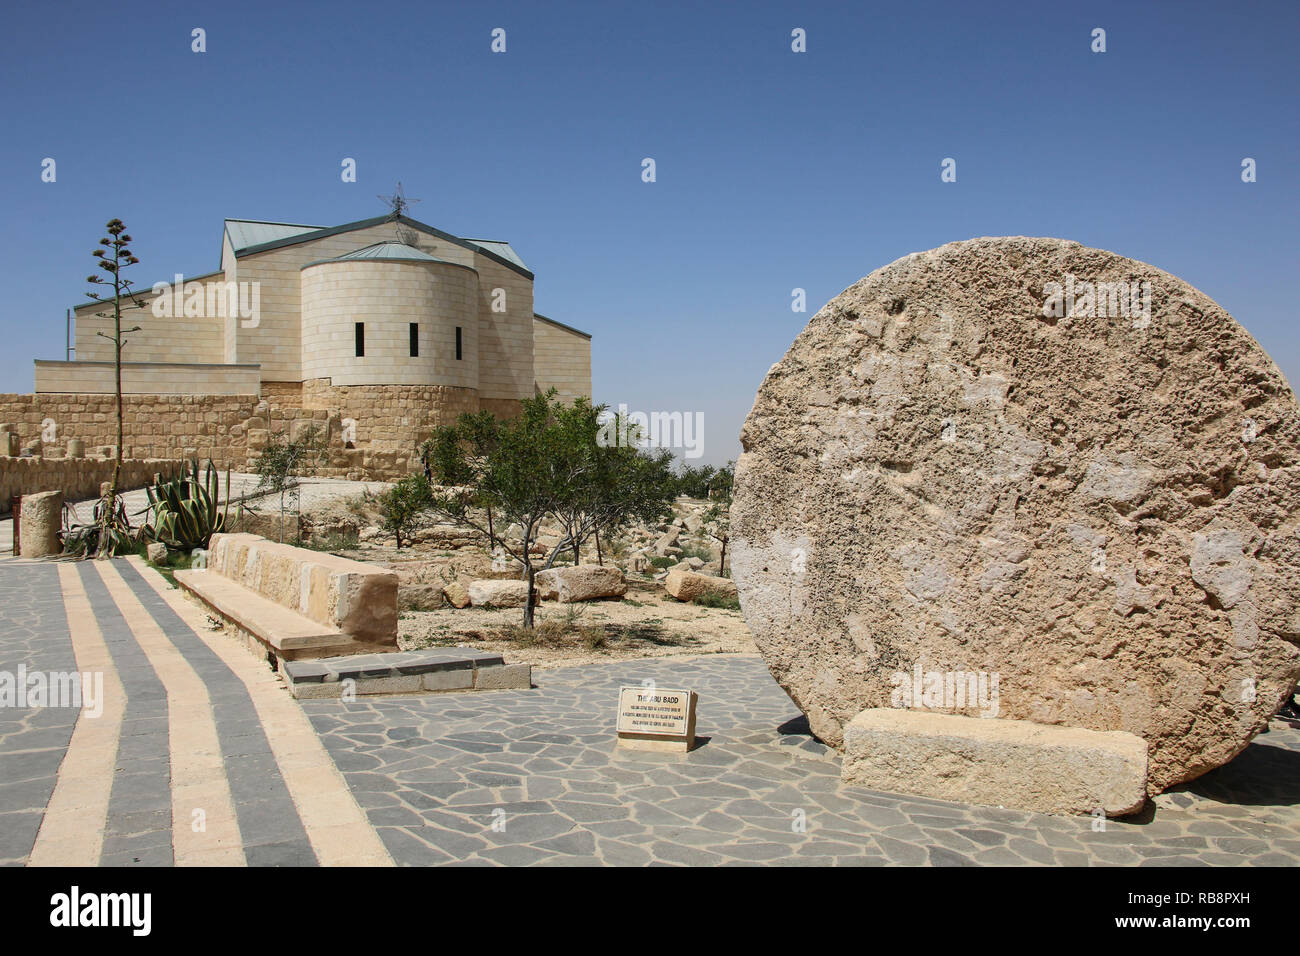 The Memorial church of Moses and Abu badd - rolling stone used as door of Byzantine Monastery on Mount Nebo, Jordan - Stock Image